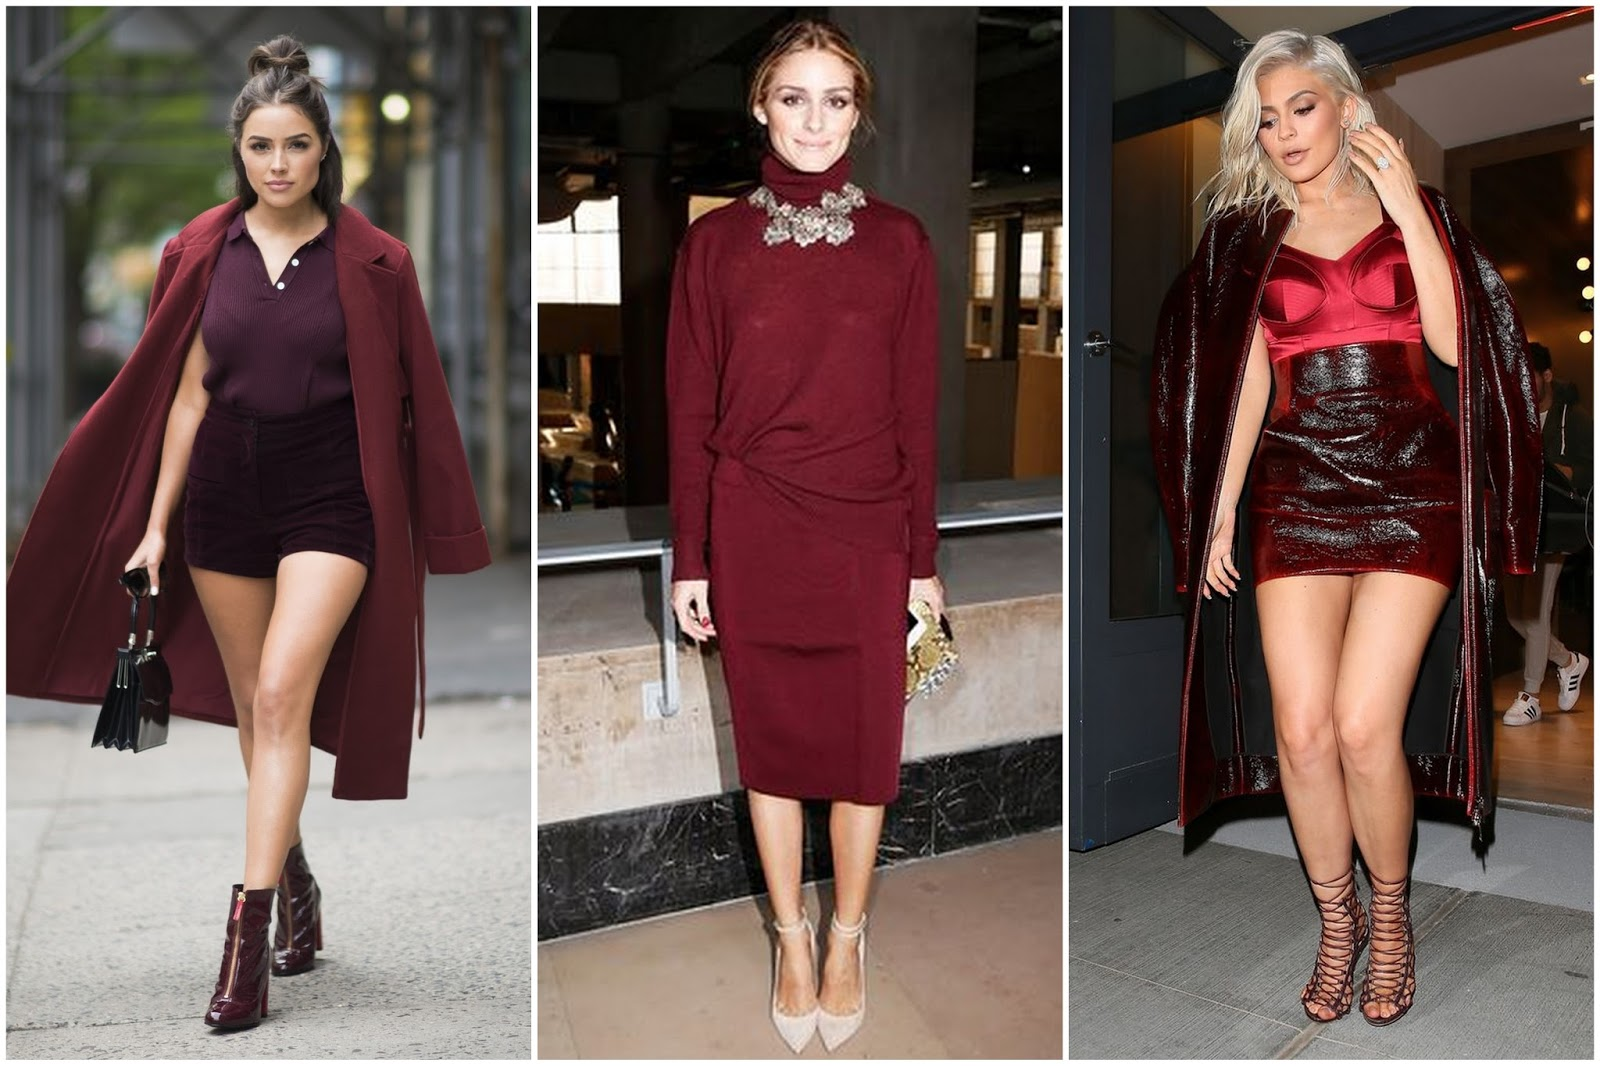 Olivia Culpo, Olivia Palermo, and Kylie Jenner stun in head-to-toe burgundy looks.